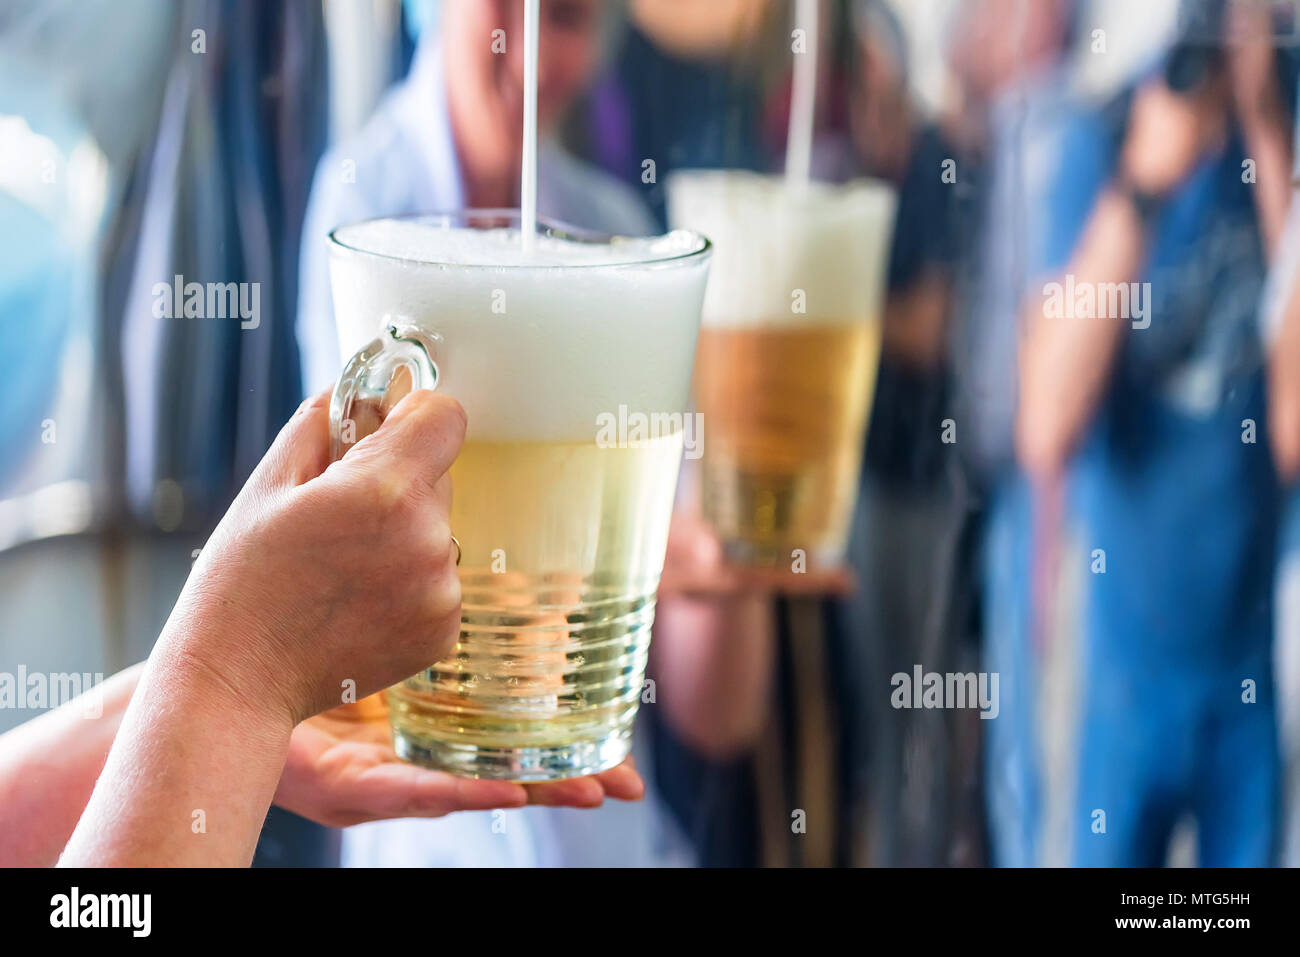 Pouring sparkling wine in glass at winery Stock Photo